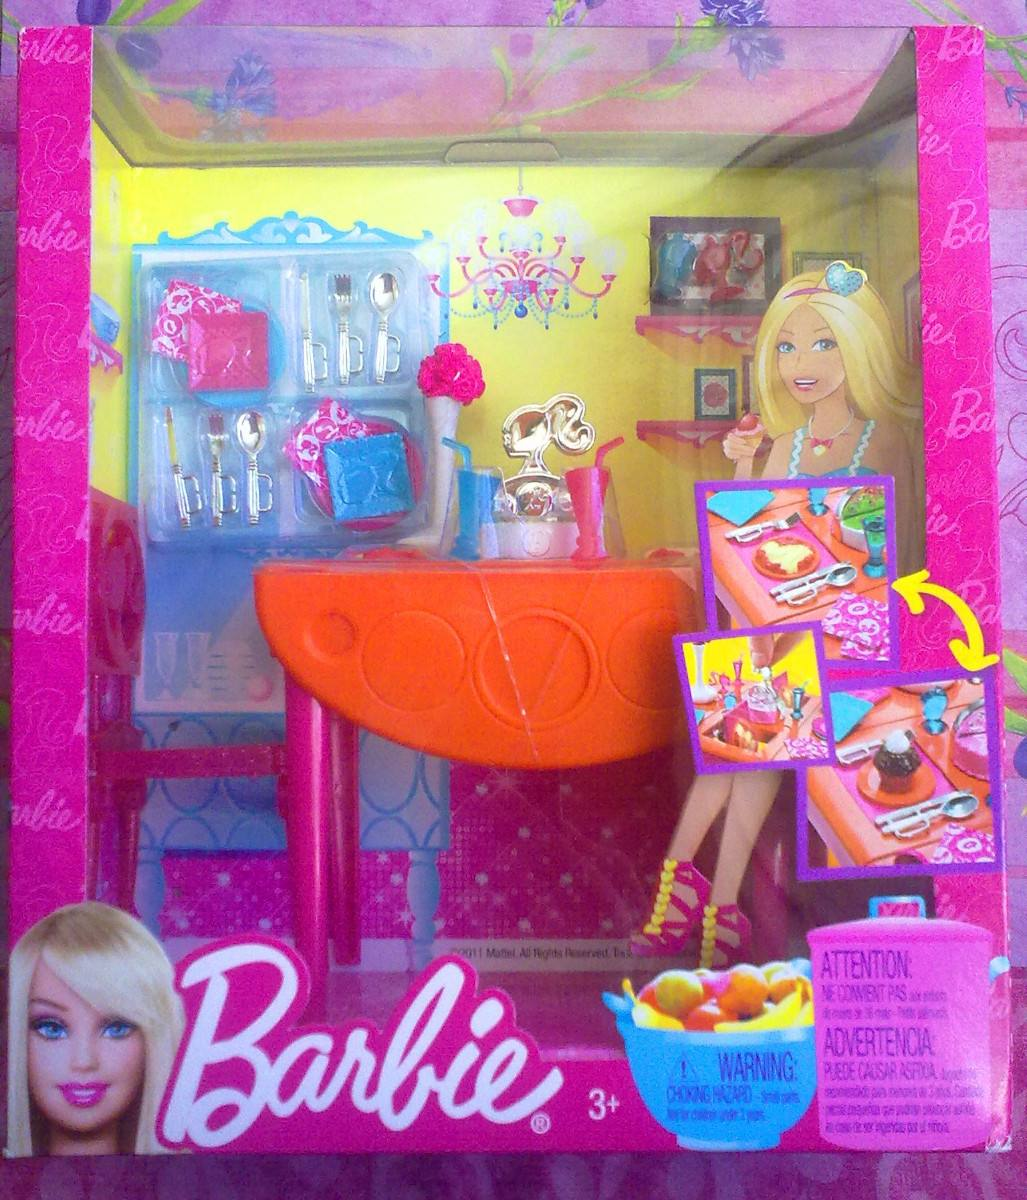 Accesorios de barbie imagui for Muebles para barbie